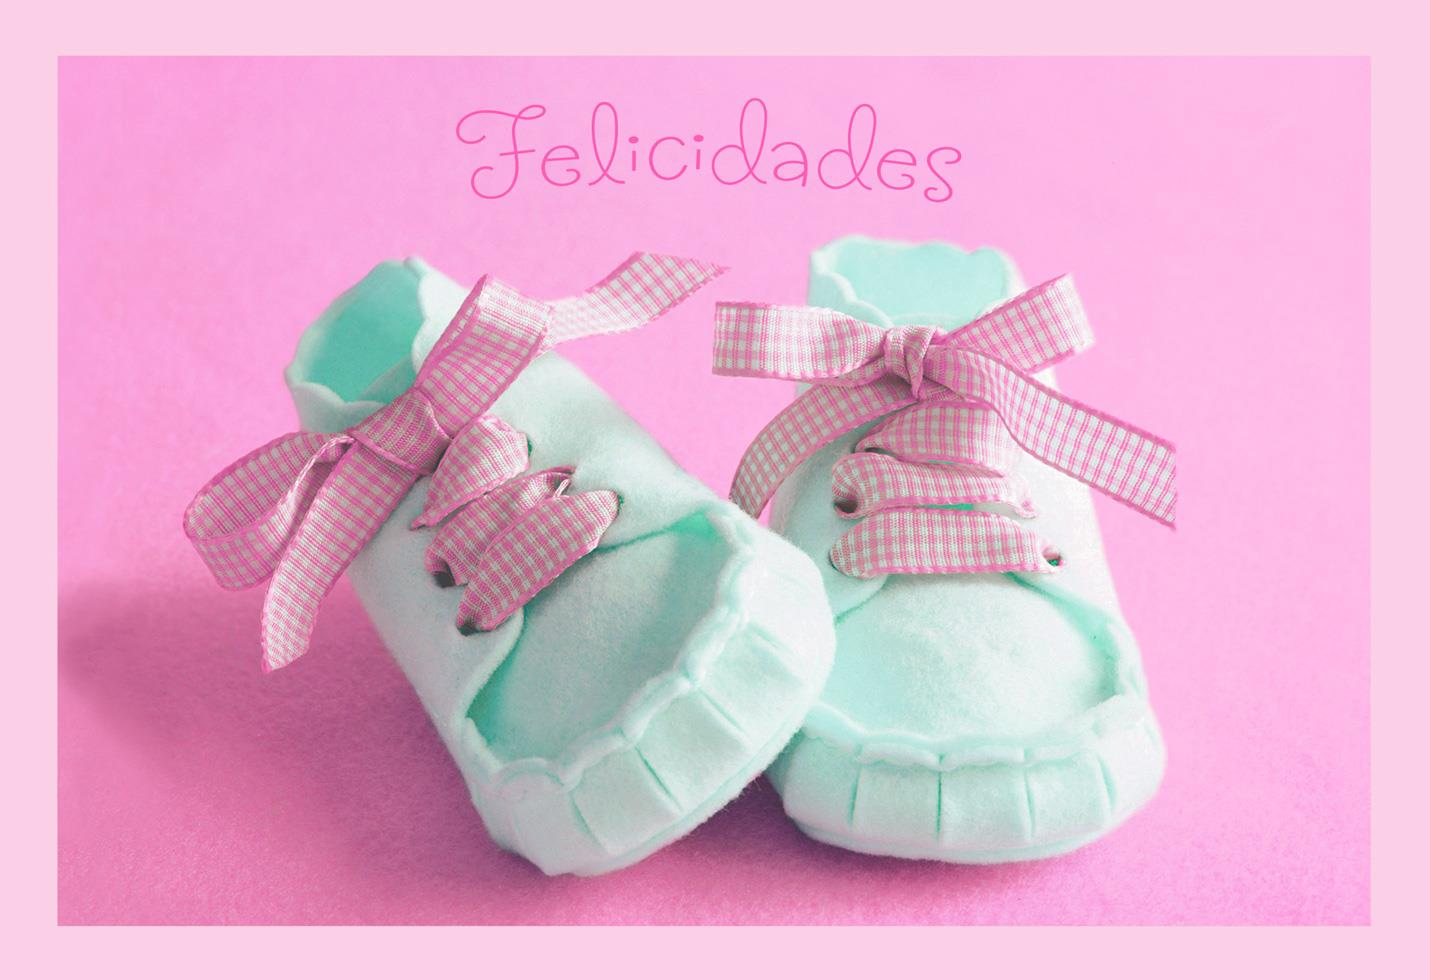 Tiny Shoes Spanish Language New Baby Girl Card